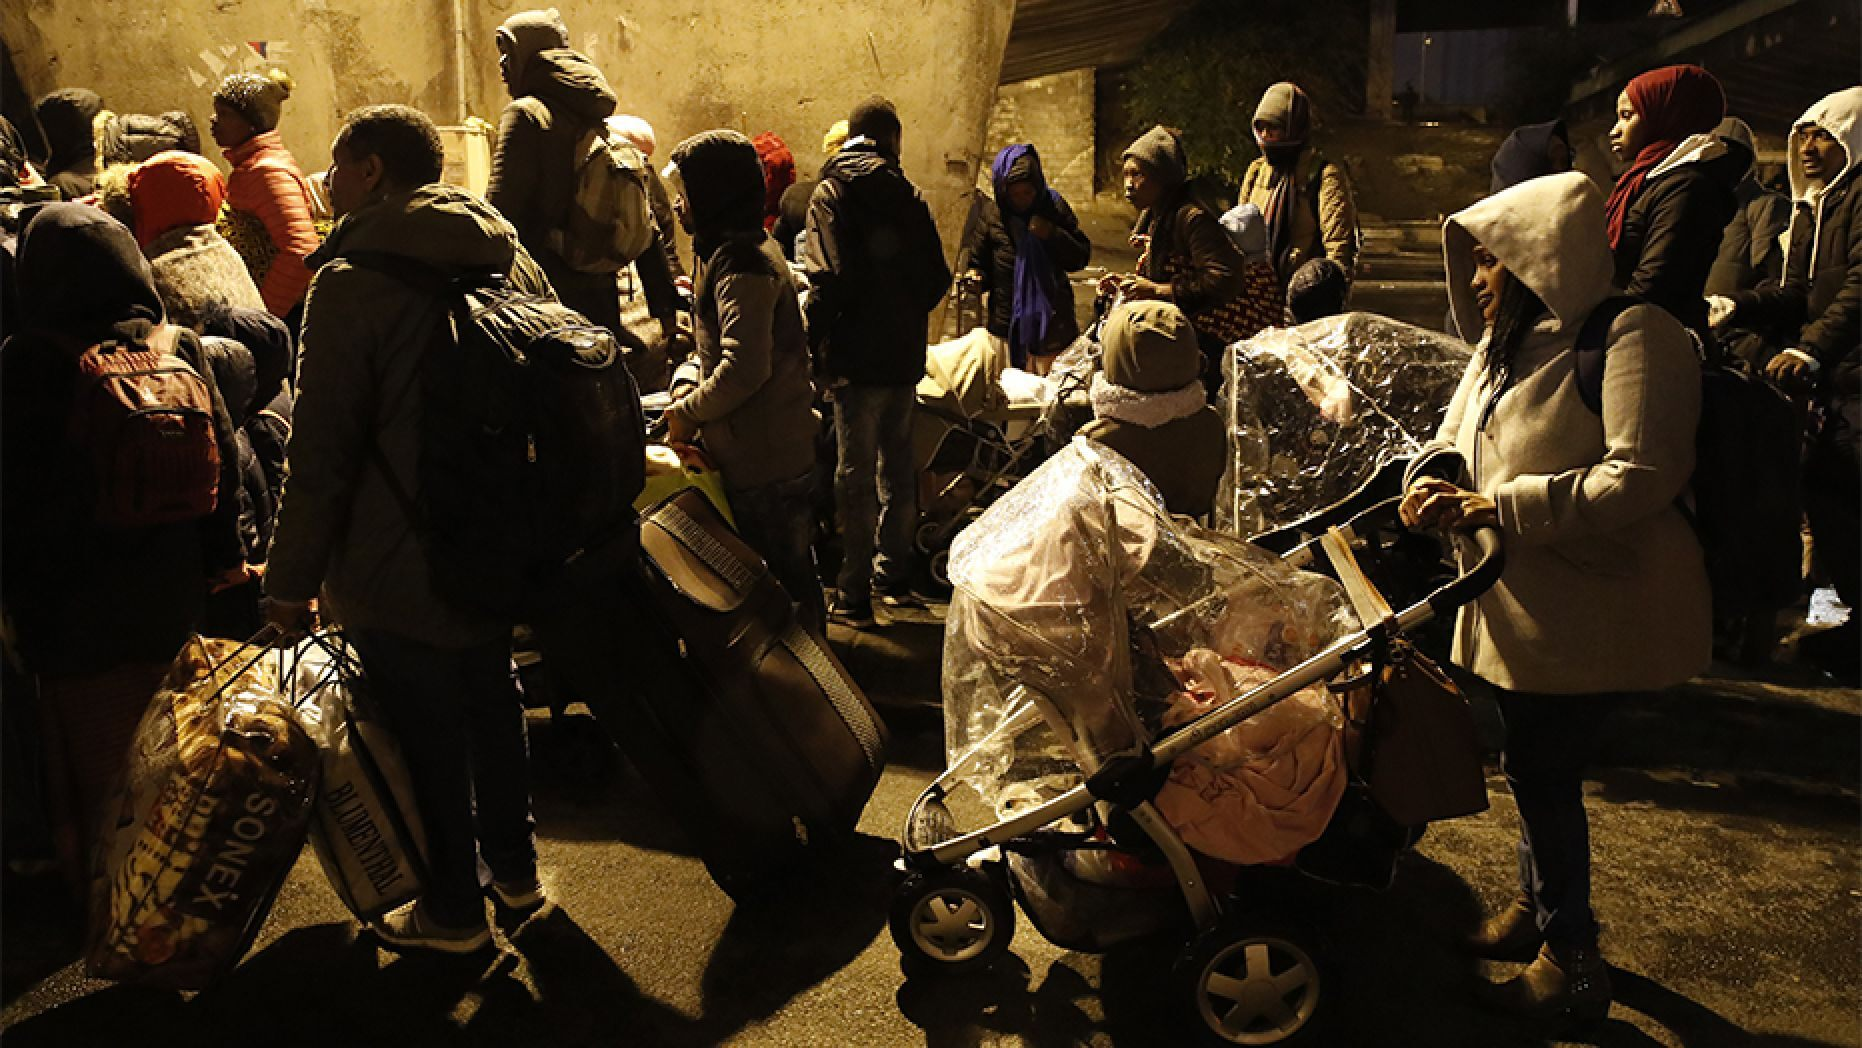 The migrants were bused away to several facilities in and around Paris Thursday after they were removed from the camps.